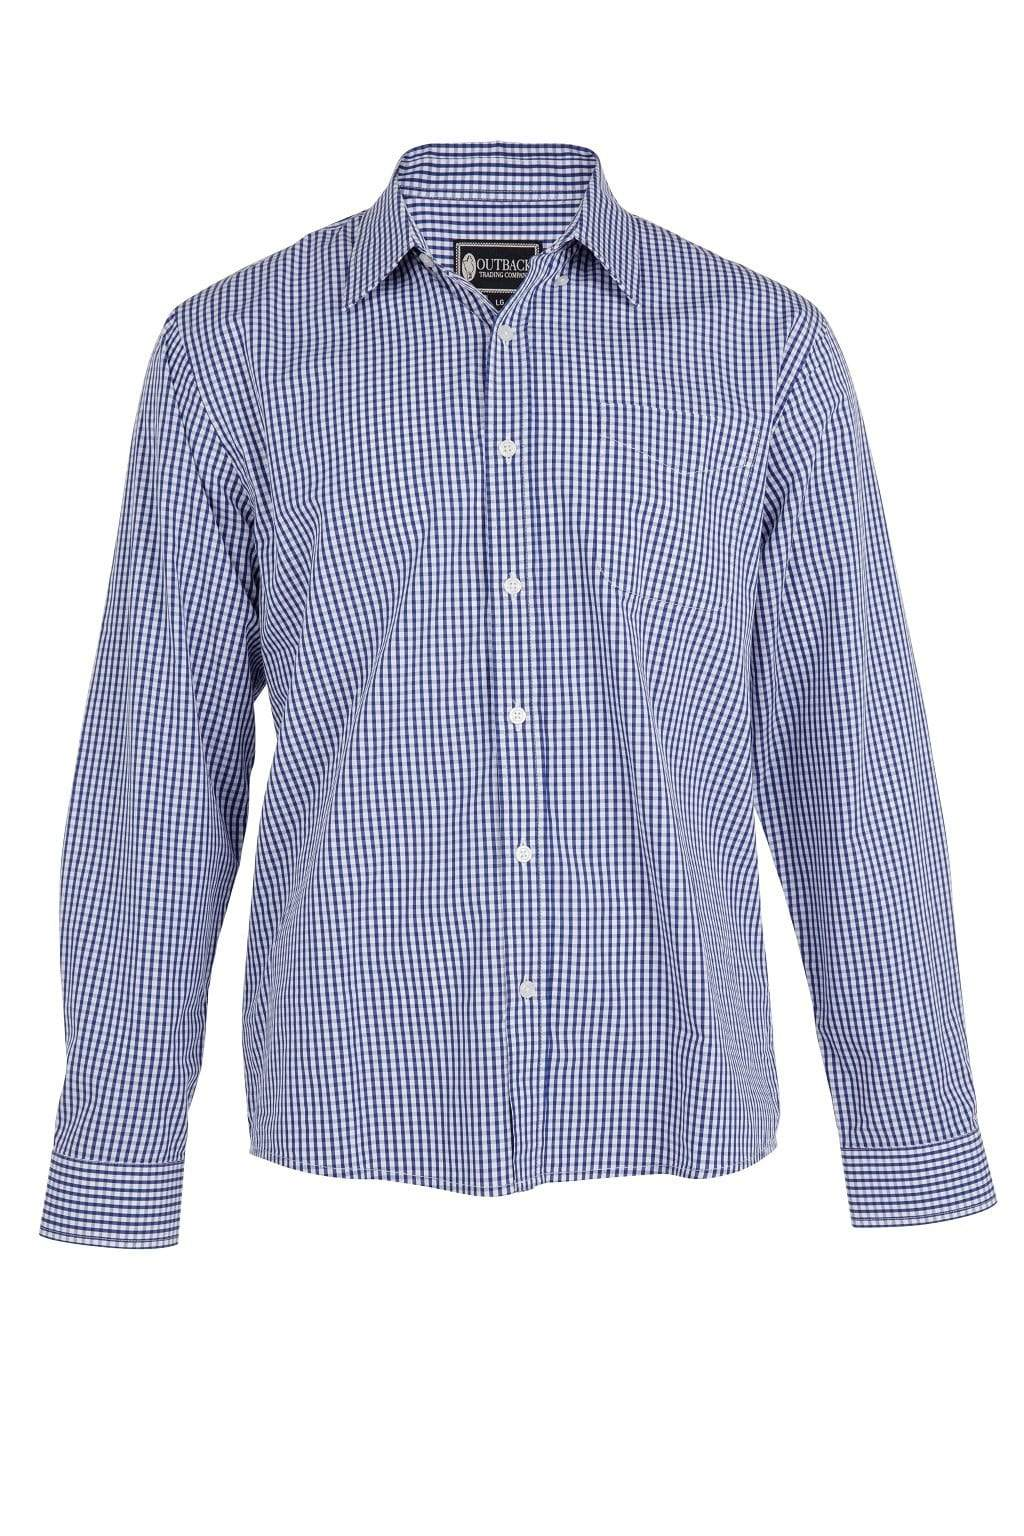 Outback Trading Company Stewart Shirt NAVY / SM 42723-NVY-SM